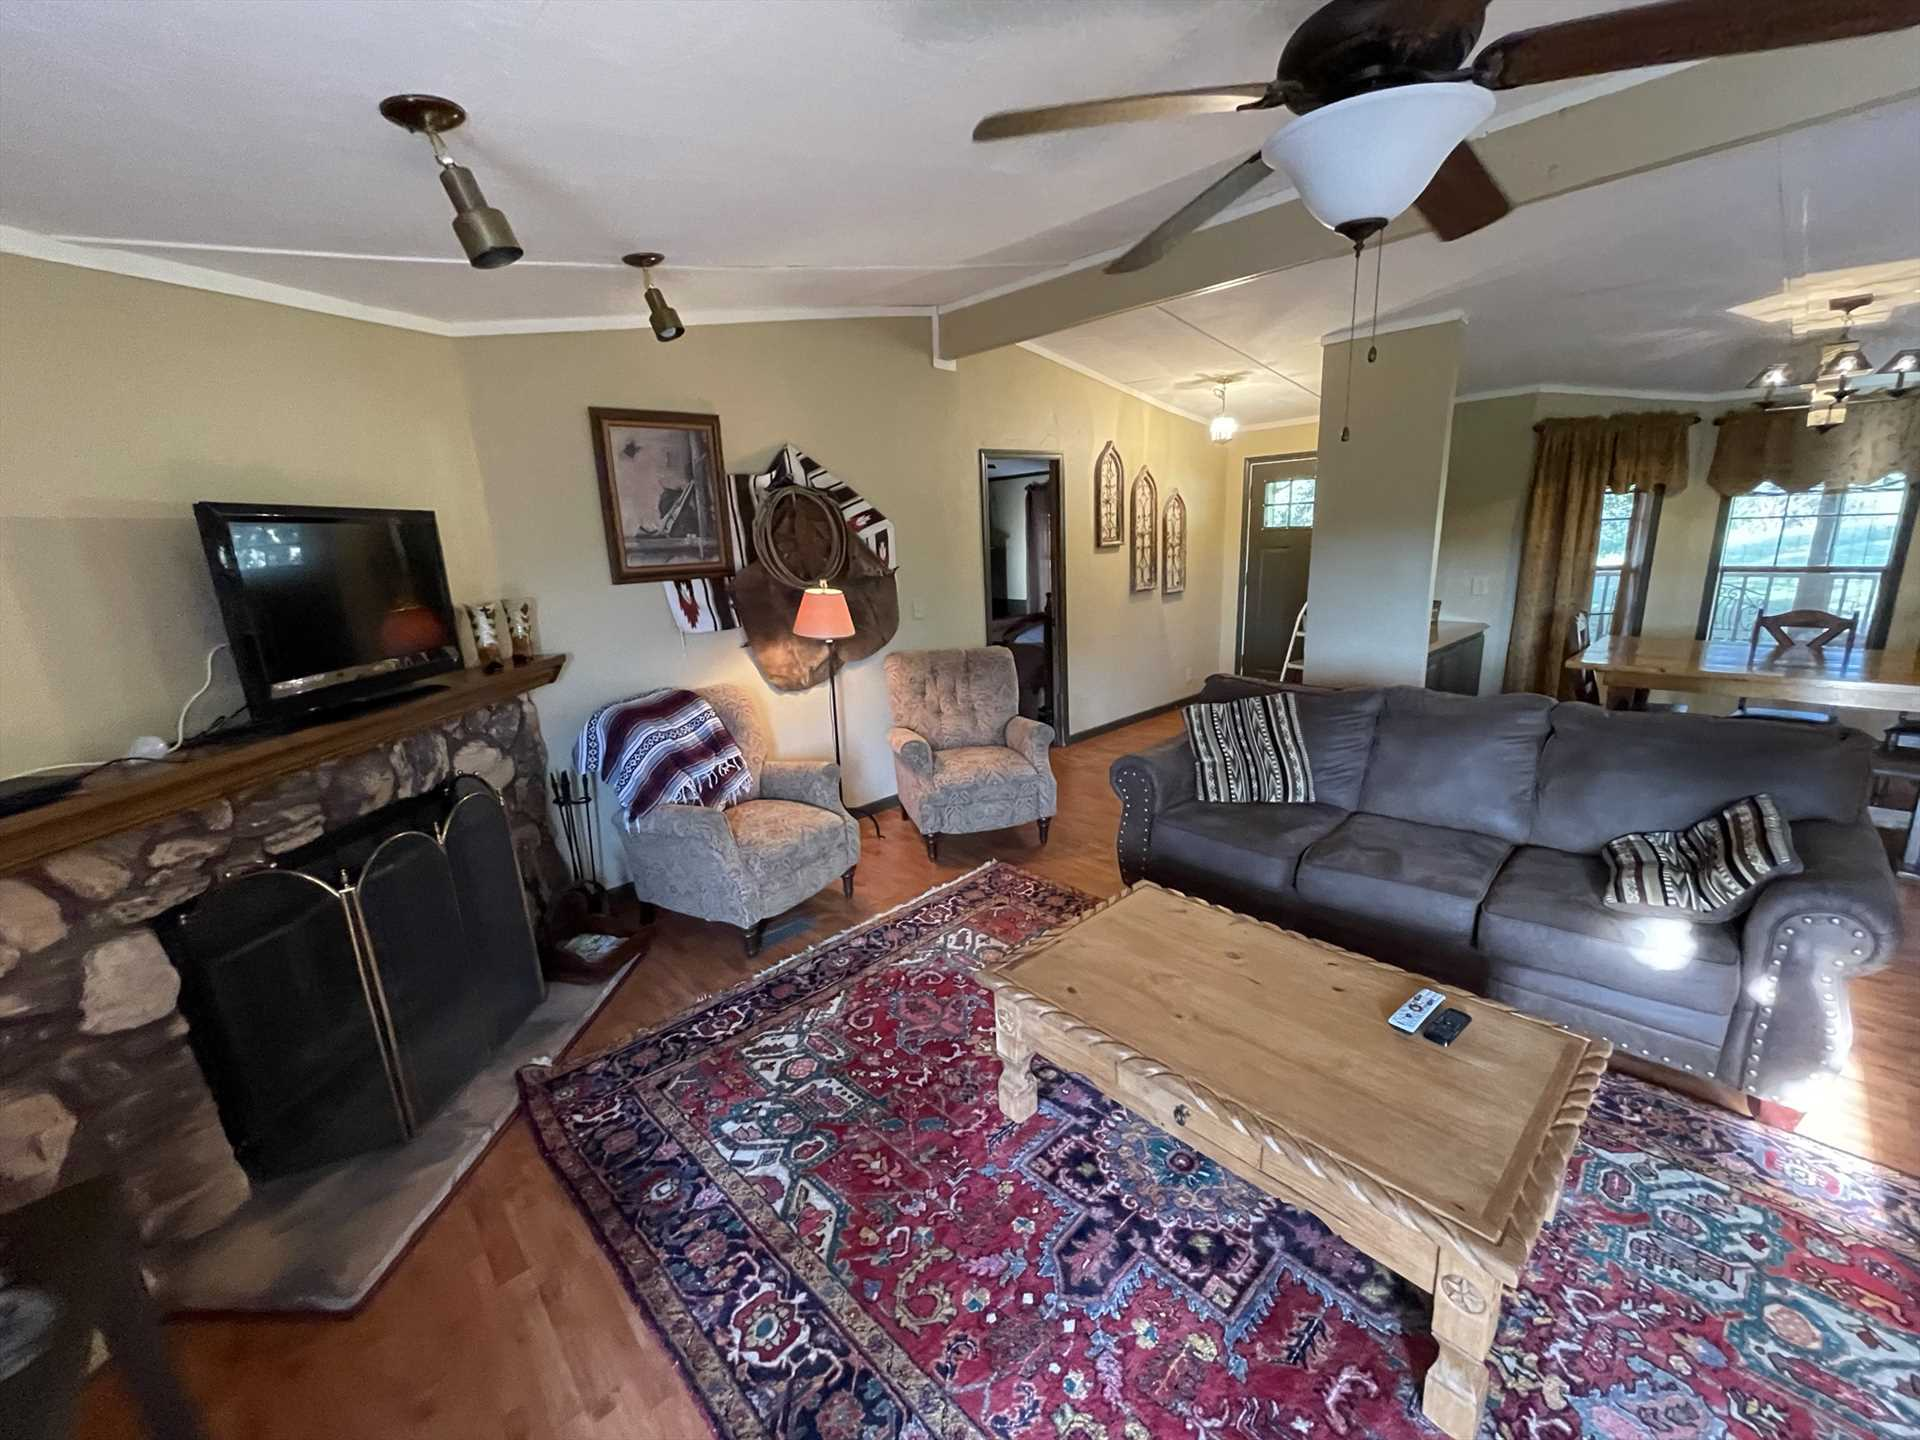 Rio Vista's living area is an amazing hang-out spot, there's a fireplace, smart TV with satellite service, Wifi, and plenty of space and plush furniture.